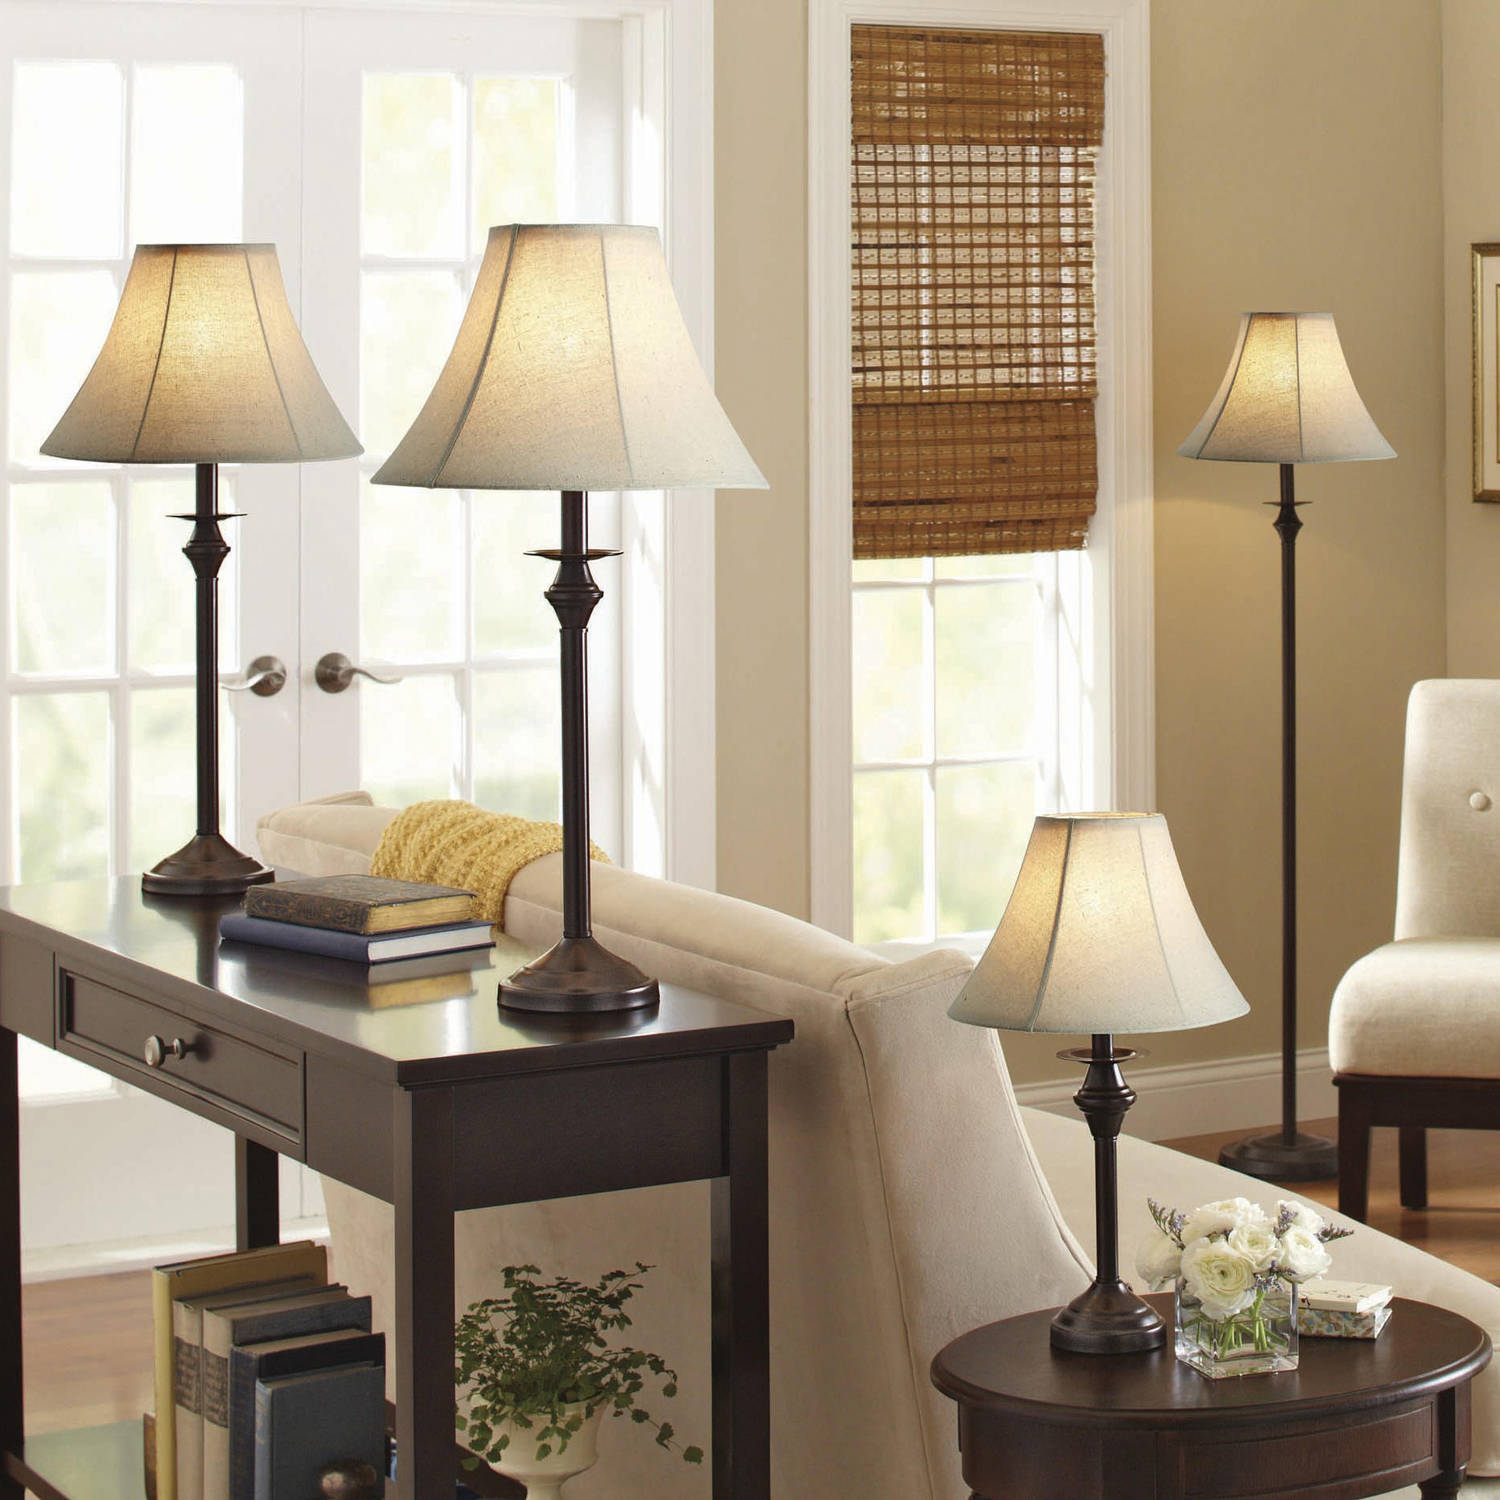 Better Homes And Gardens 4 Piece Lamp Set, Dark Brown Finish   Walmart.com